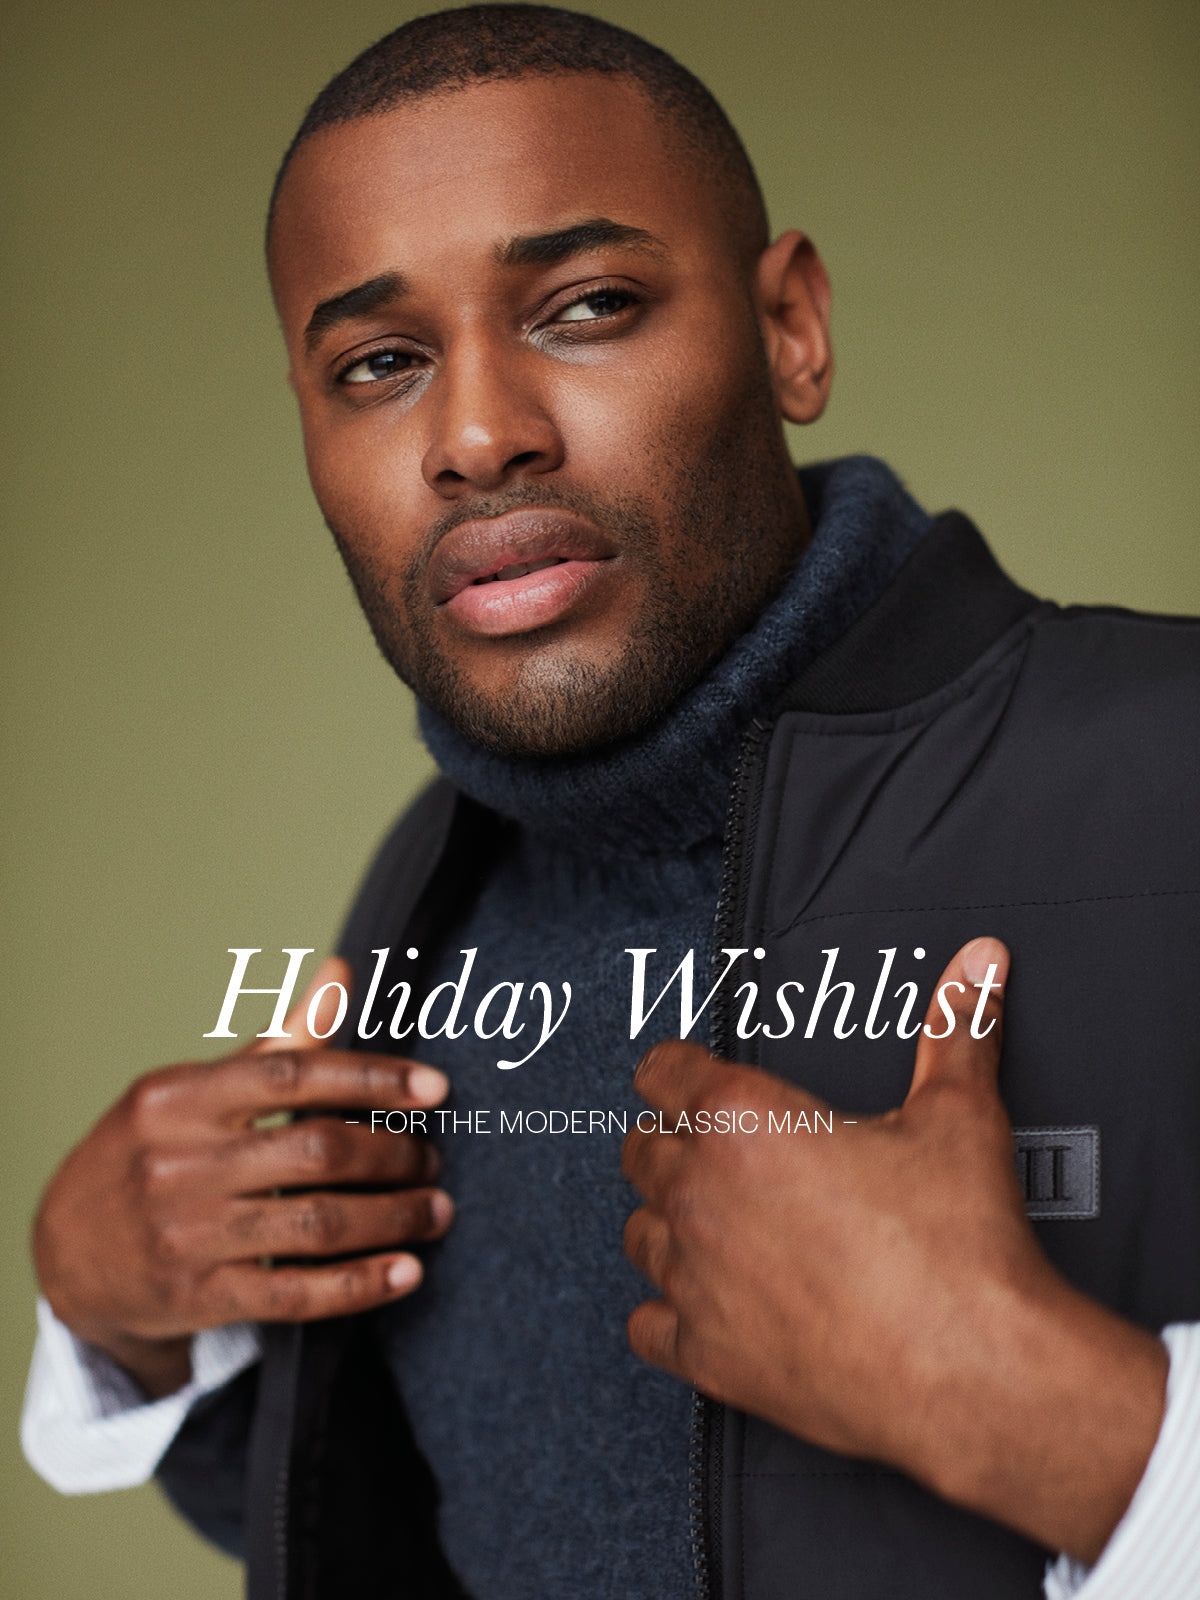 The Les Deux Holiday Wishlist